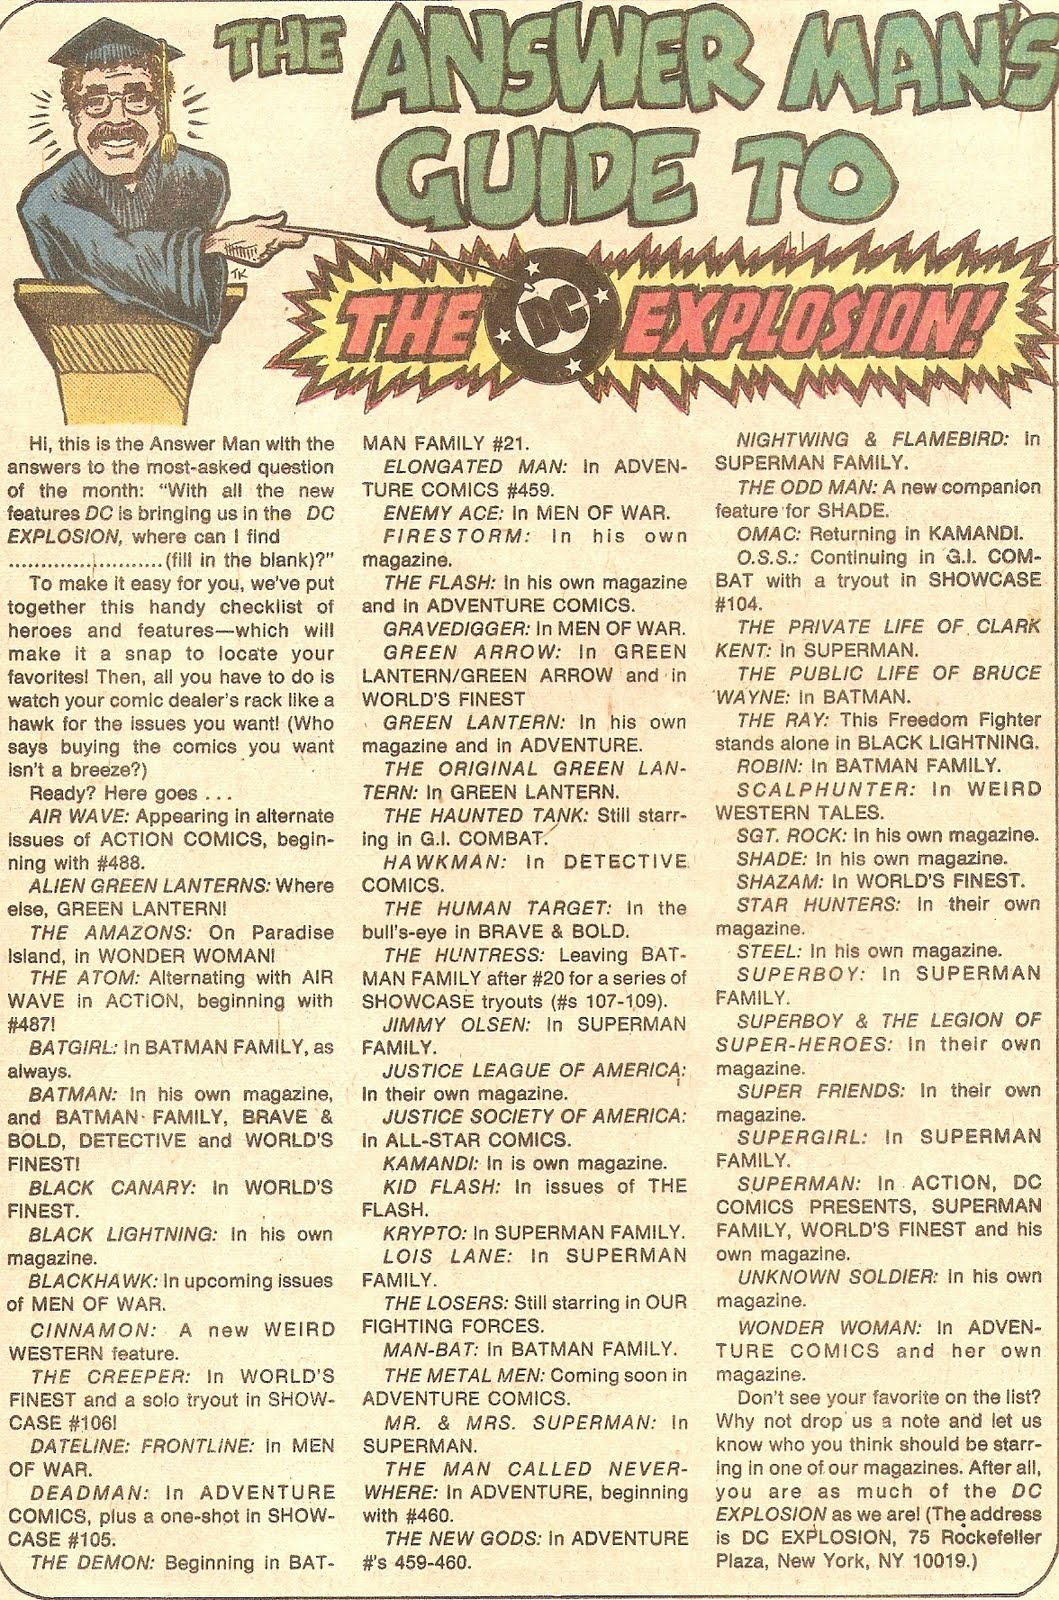 The Answer Man's Guide To the DC ExplosionTeen Titans #48, written by Bob Rozakis.